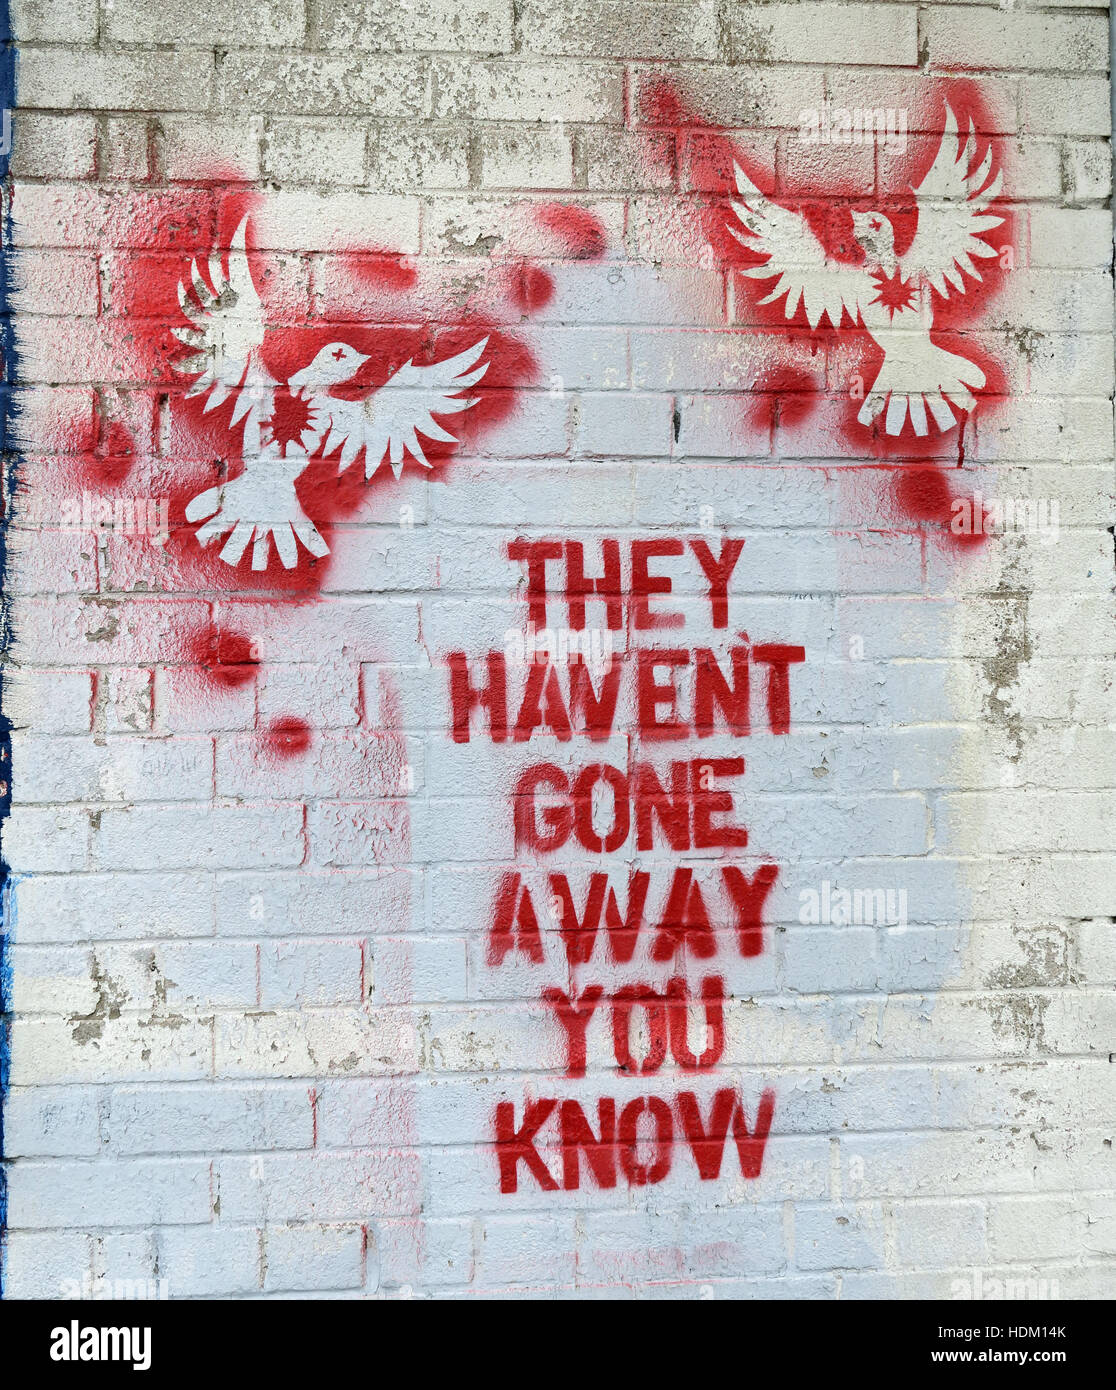 Northern Ireland,Peace,Wall,Cupar way,West Belfast,Belfast,Irish,art,artworks,artwork,Gerry,Adams,quote,quotation,IRA,Sinn Fein,provos,provisional,provisionals,stencil,stenciled,art,blood,red,Berlin wall,Gerry Adams,they Havent Gone Away You Know,they Havent Gone Away You Know,GoTonySmith,@HotpixUK,Tony,Smith,UK,GB,Great,Britain,United,Kingdom,Irish,British,Ireland,problem,with,problem with,issue with,NI,Northern,Northern Ireland,Belfast,City,Centre,Art,Artists,the,troubles,The Troubles,Good Friday Agreement,Peace,honour,painting,wall,walls,tribute,Unionist,unionism,Protestant,Catholic,republican,Sinn Fein,community,Fight,Justice,West,Beal,feirste,martyrs,social,tour,tourism,tourists,urban,six,counties,6,backdrop,county,Antrim,UVF,DUP,British,GB,Empire,Buy Pictures of,Buy Images Of,Images of,Stock Images,Tony Smith,United Kingdom,Great Britain,British Isles,Belfast protestant community,Peoples army,Belfast catholic community,Irelands Berlin wall